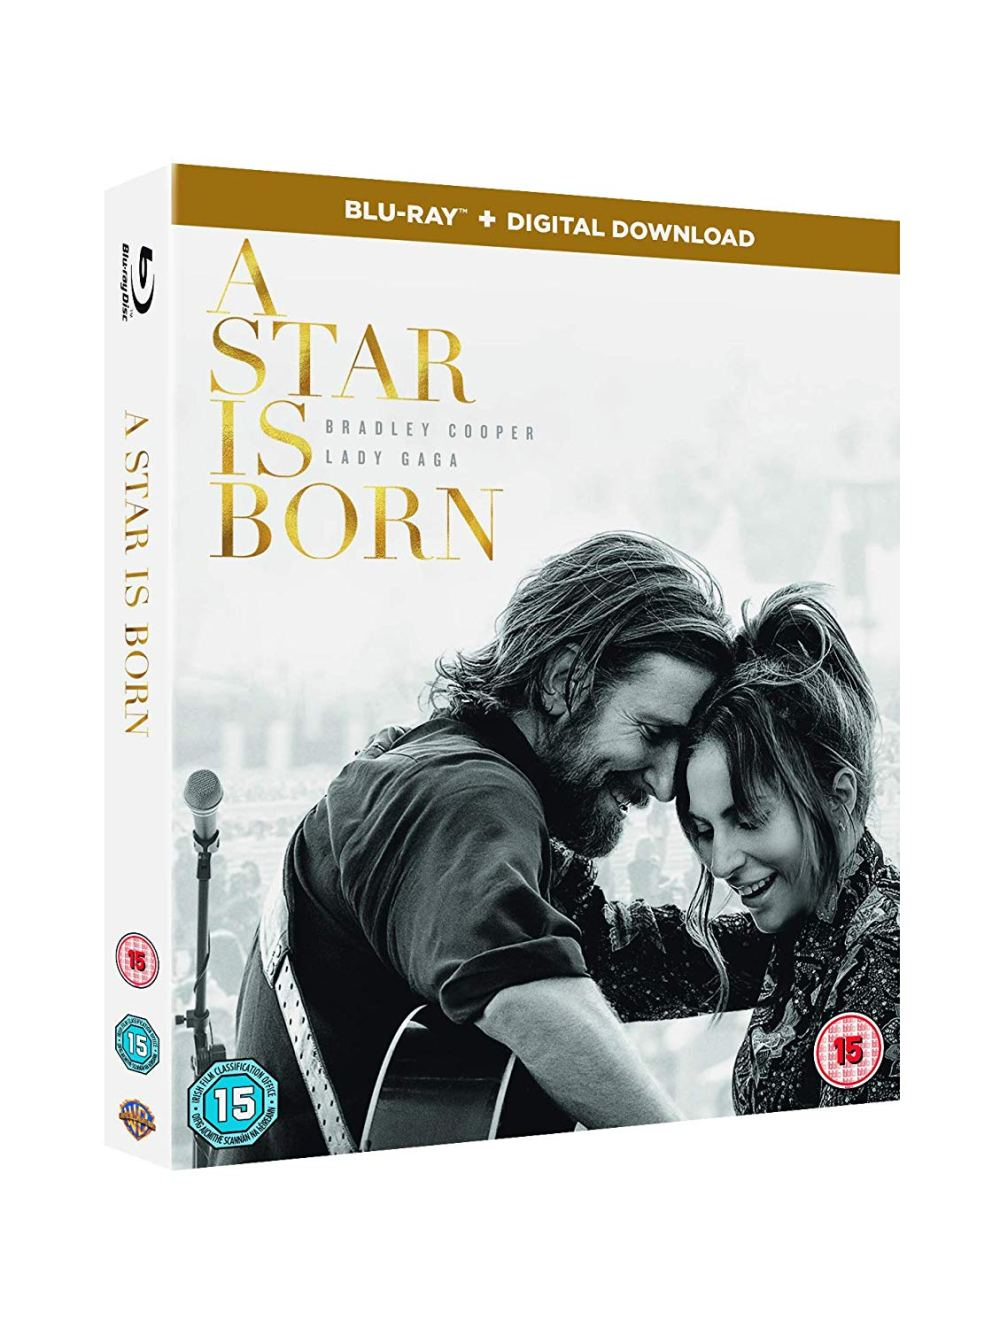 a star is born blu-ray 2